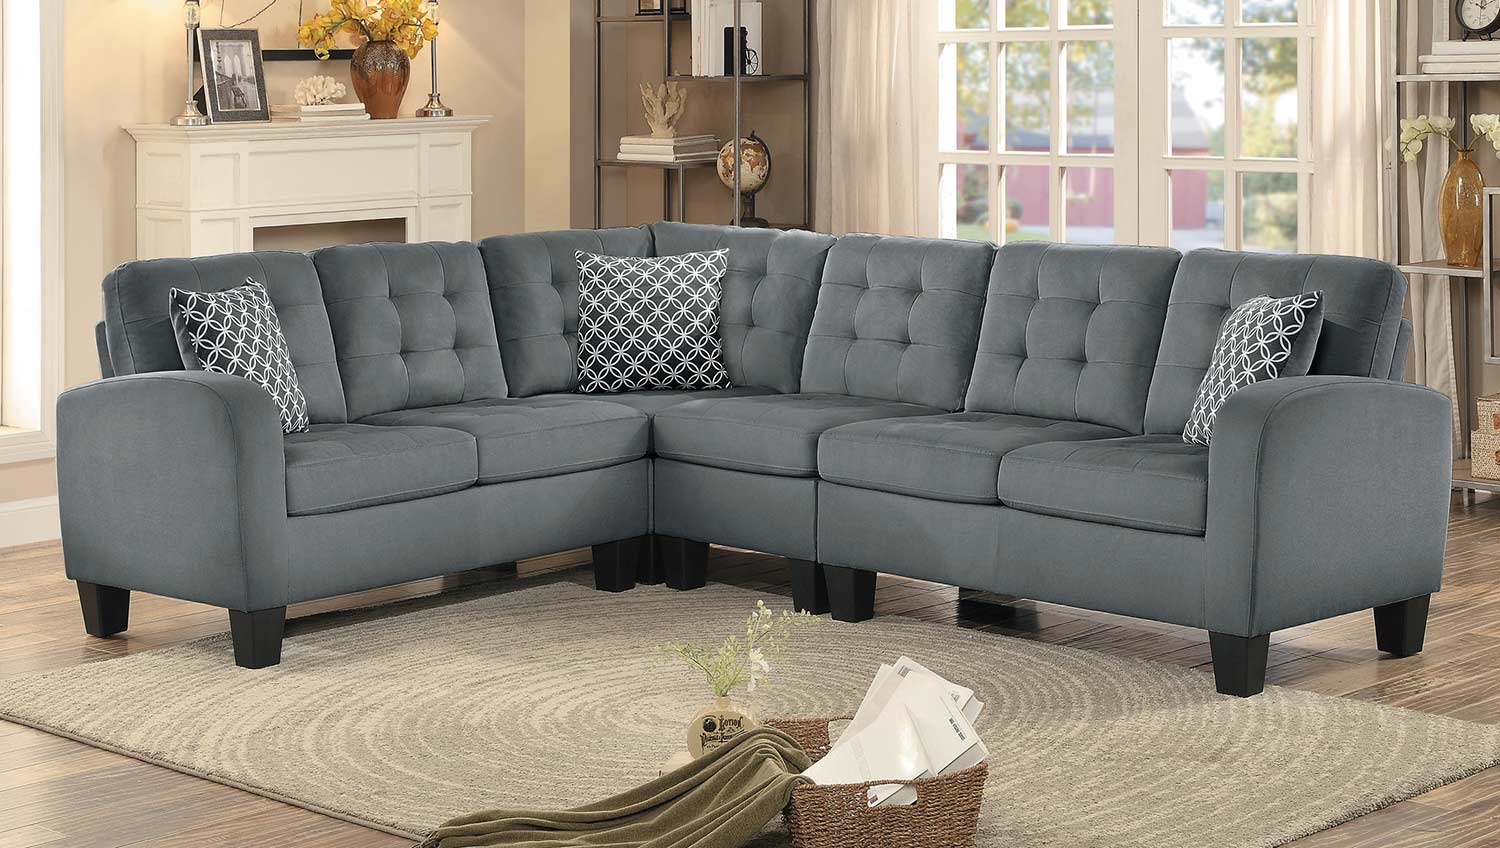 Homelegance sinclair reversible sectional sofa gray - Cheap living room furniture toronto ...